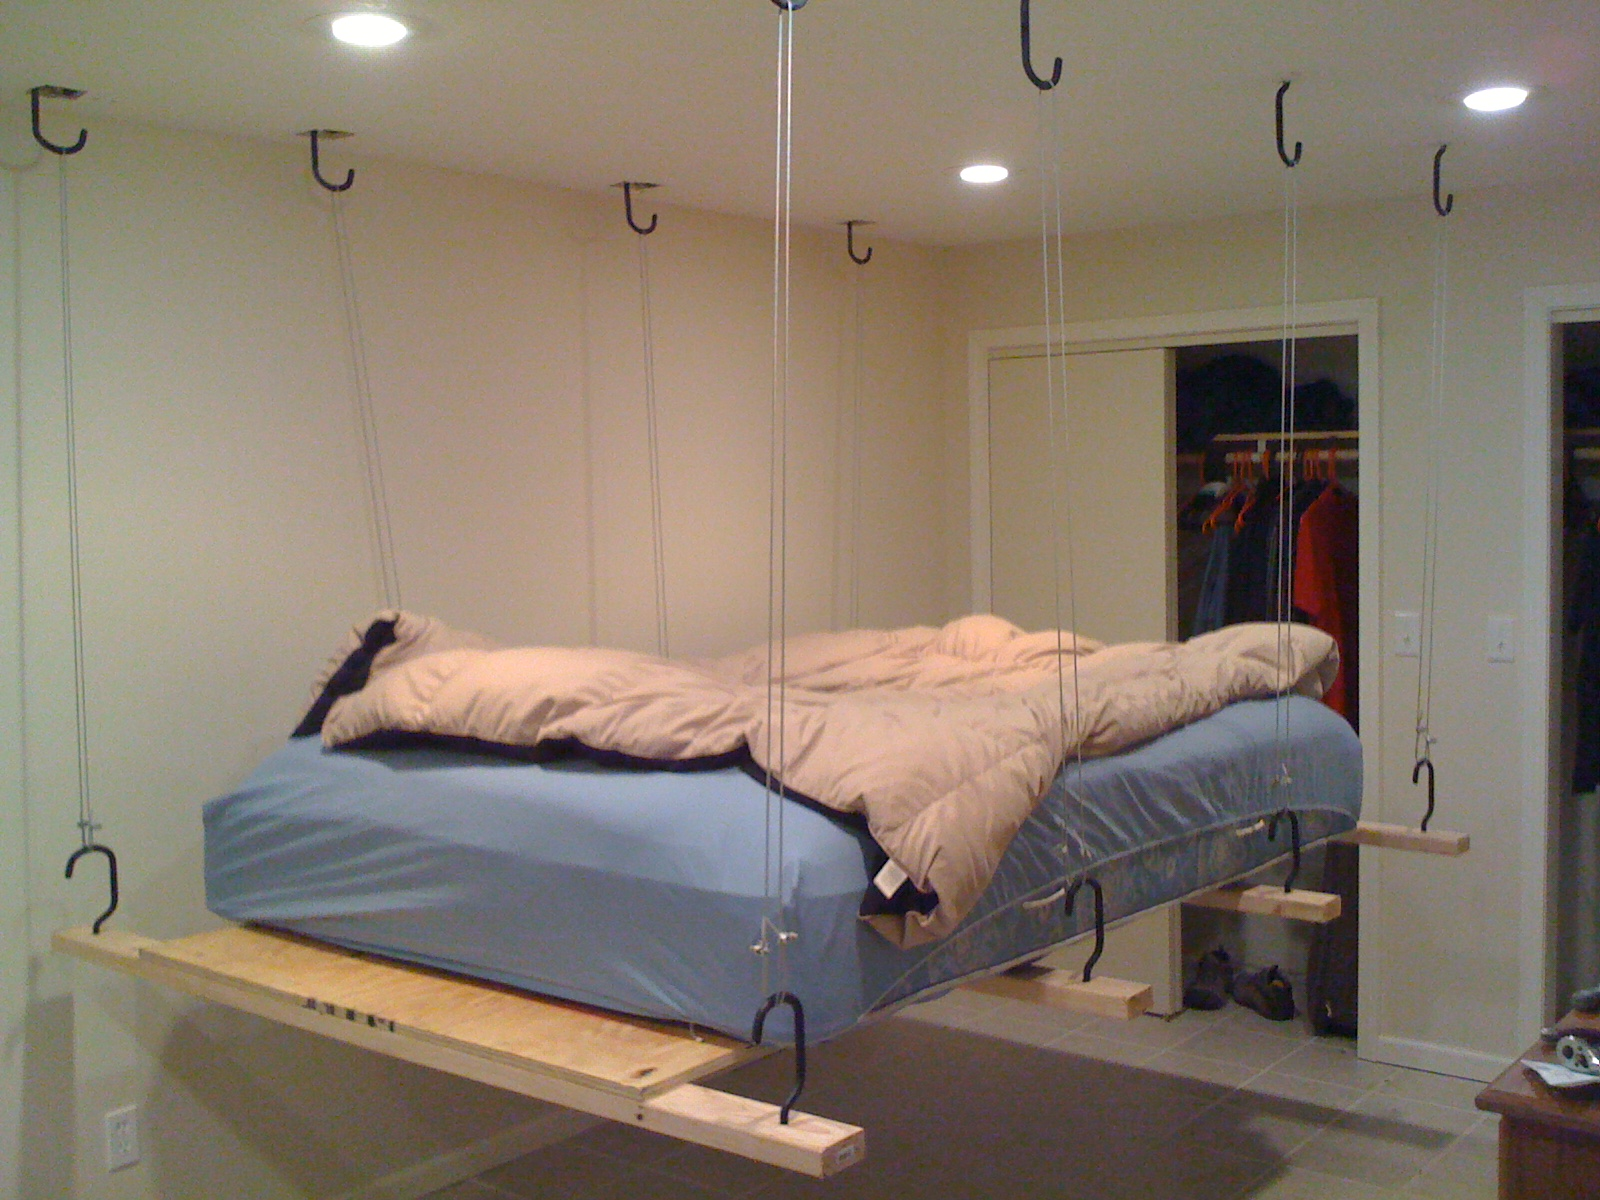 Updated: Hang Your Bed From the Heavens! All for around $100